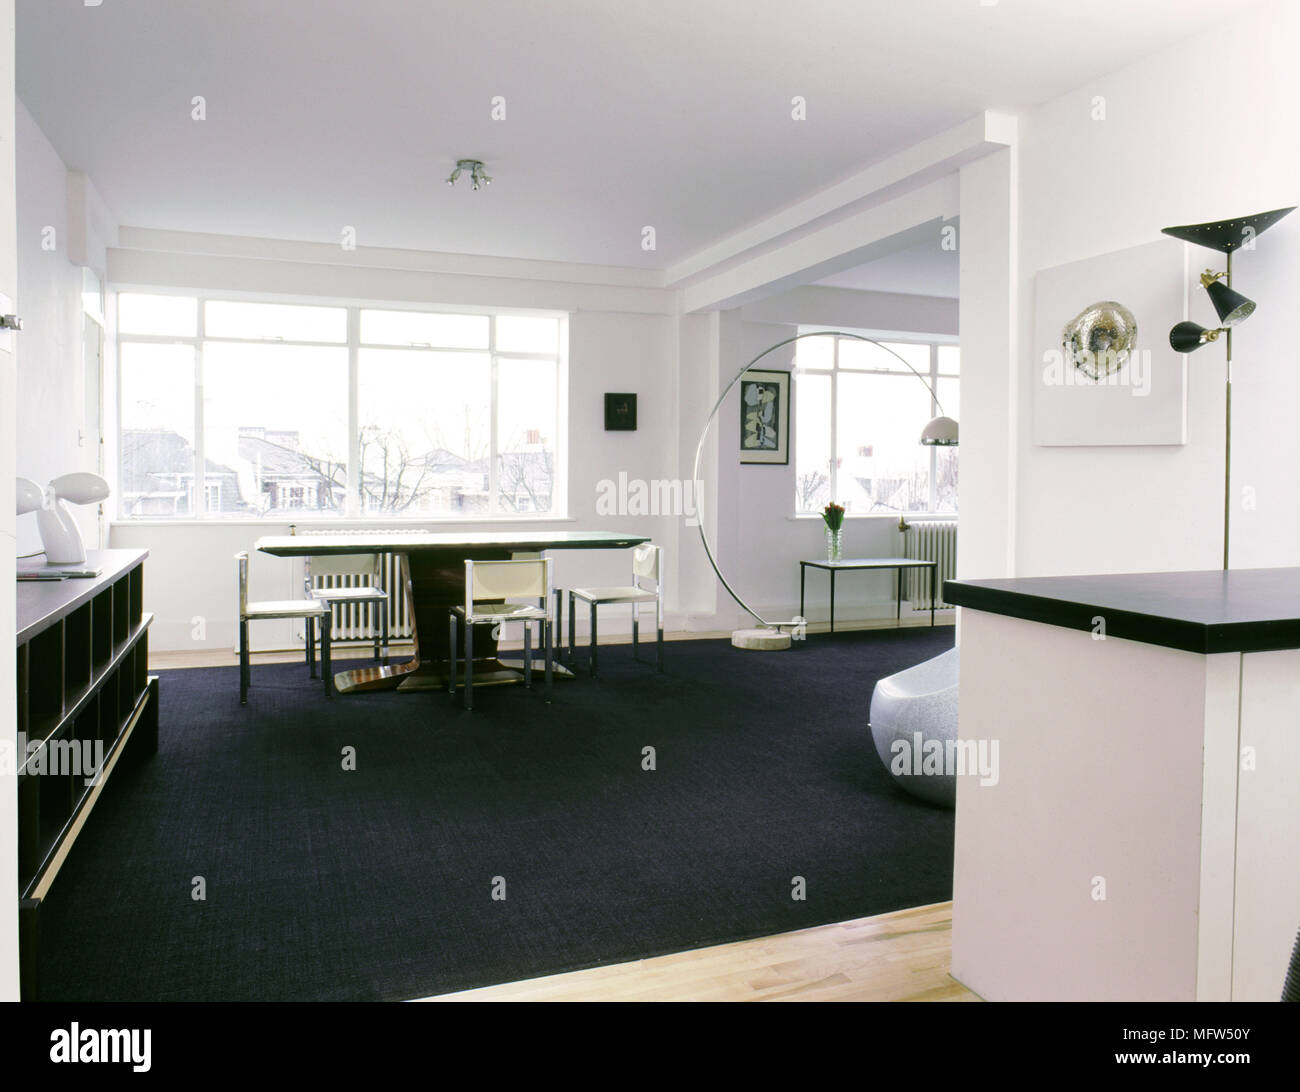 Modern Open Living Area With Black Carpet Dining Table And Chairs Curving Floor Lamp Sunny Windows